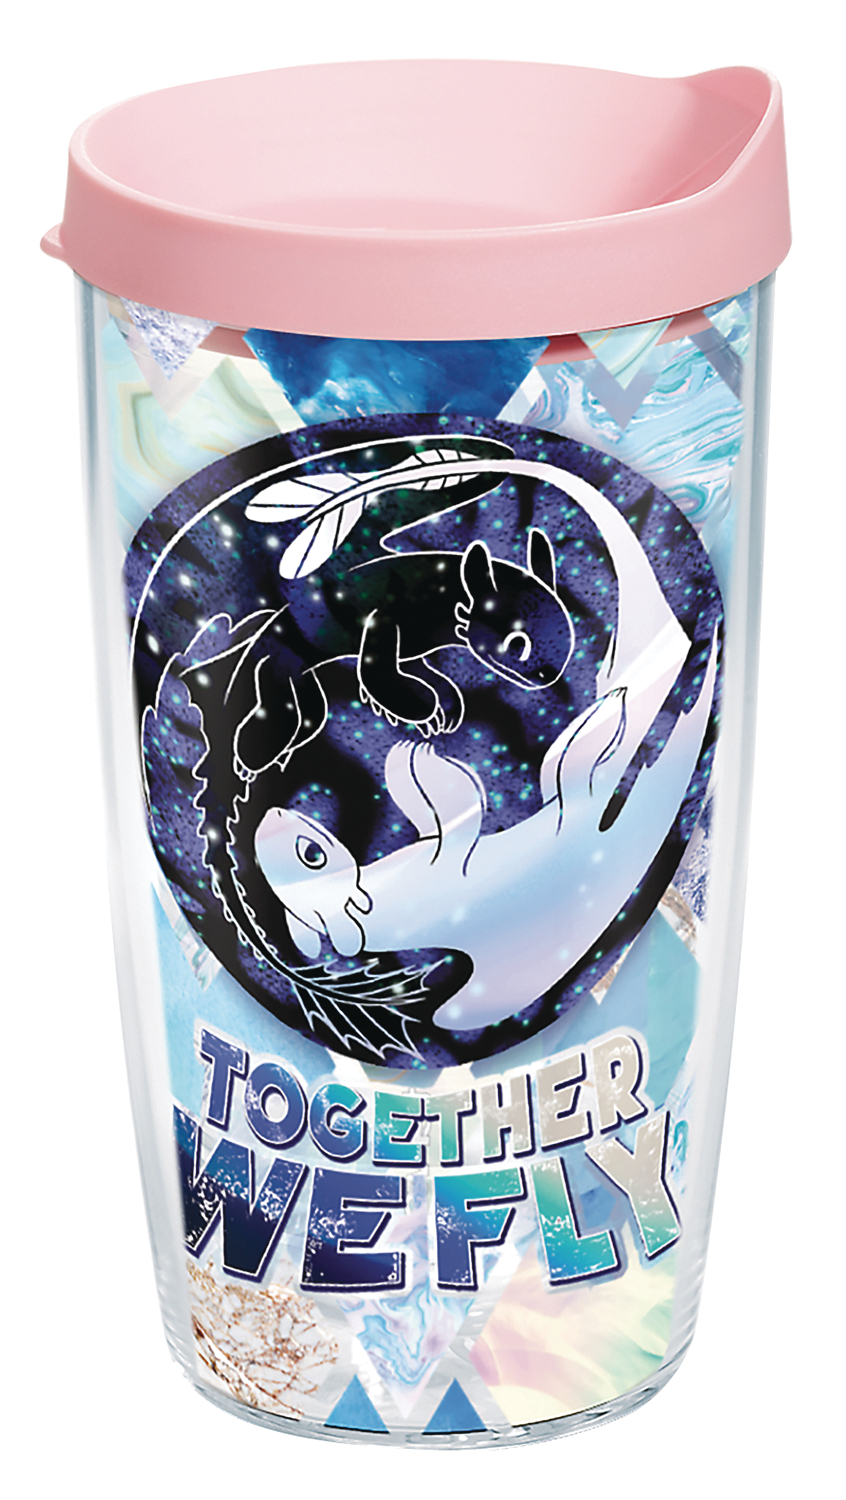 HTTYD TOGETHER WE FLY 16 OZ TUMBLER W/LID